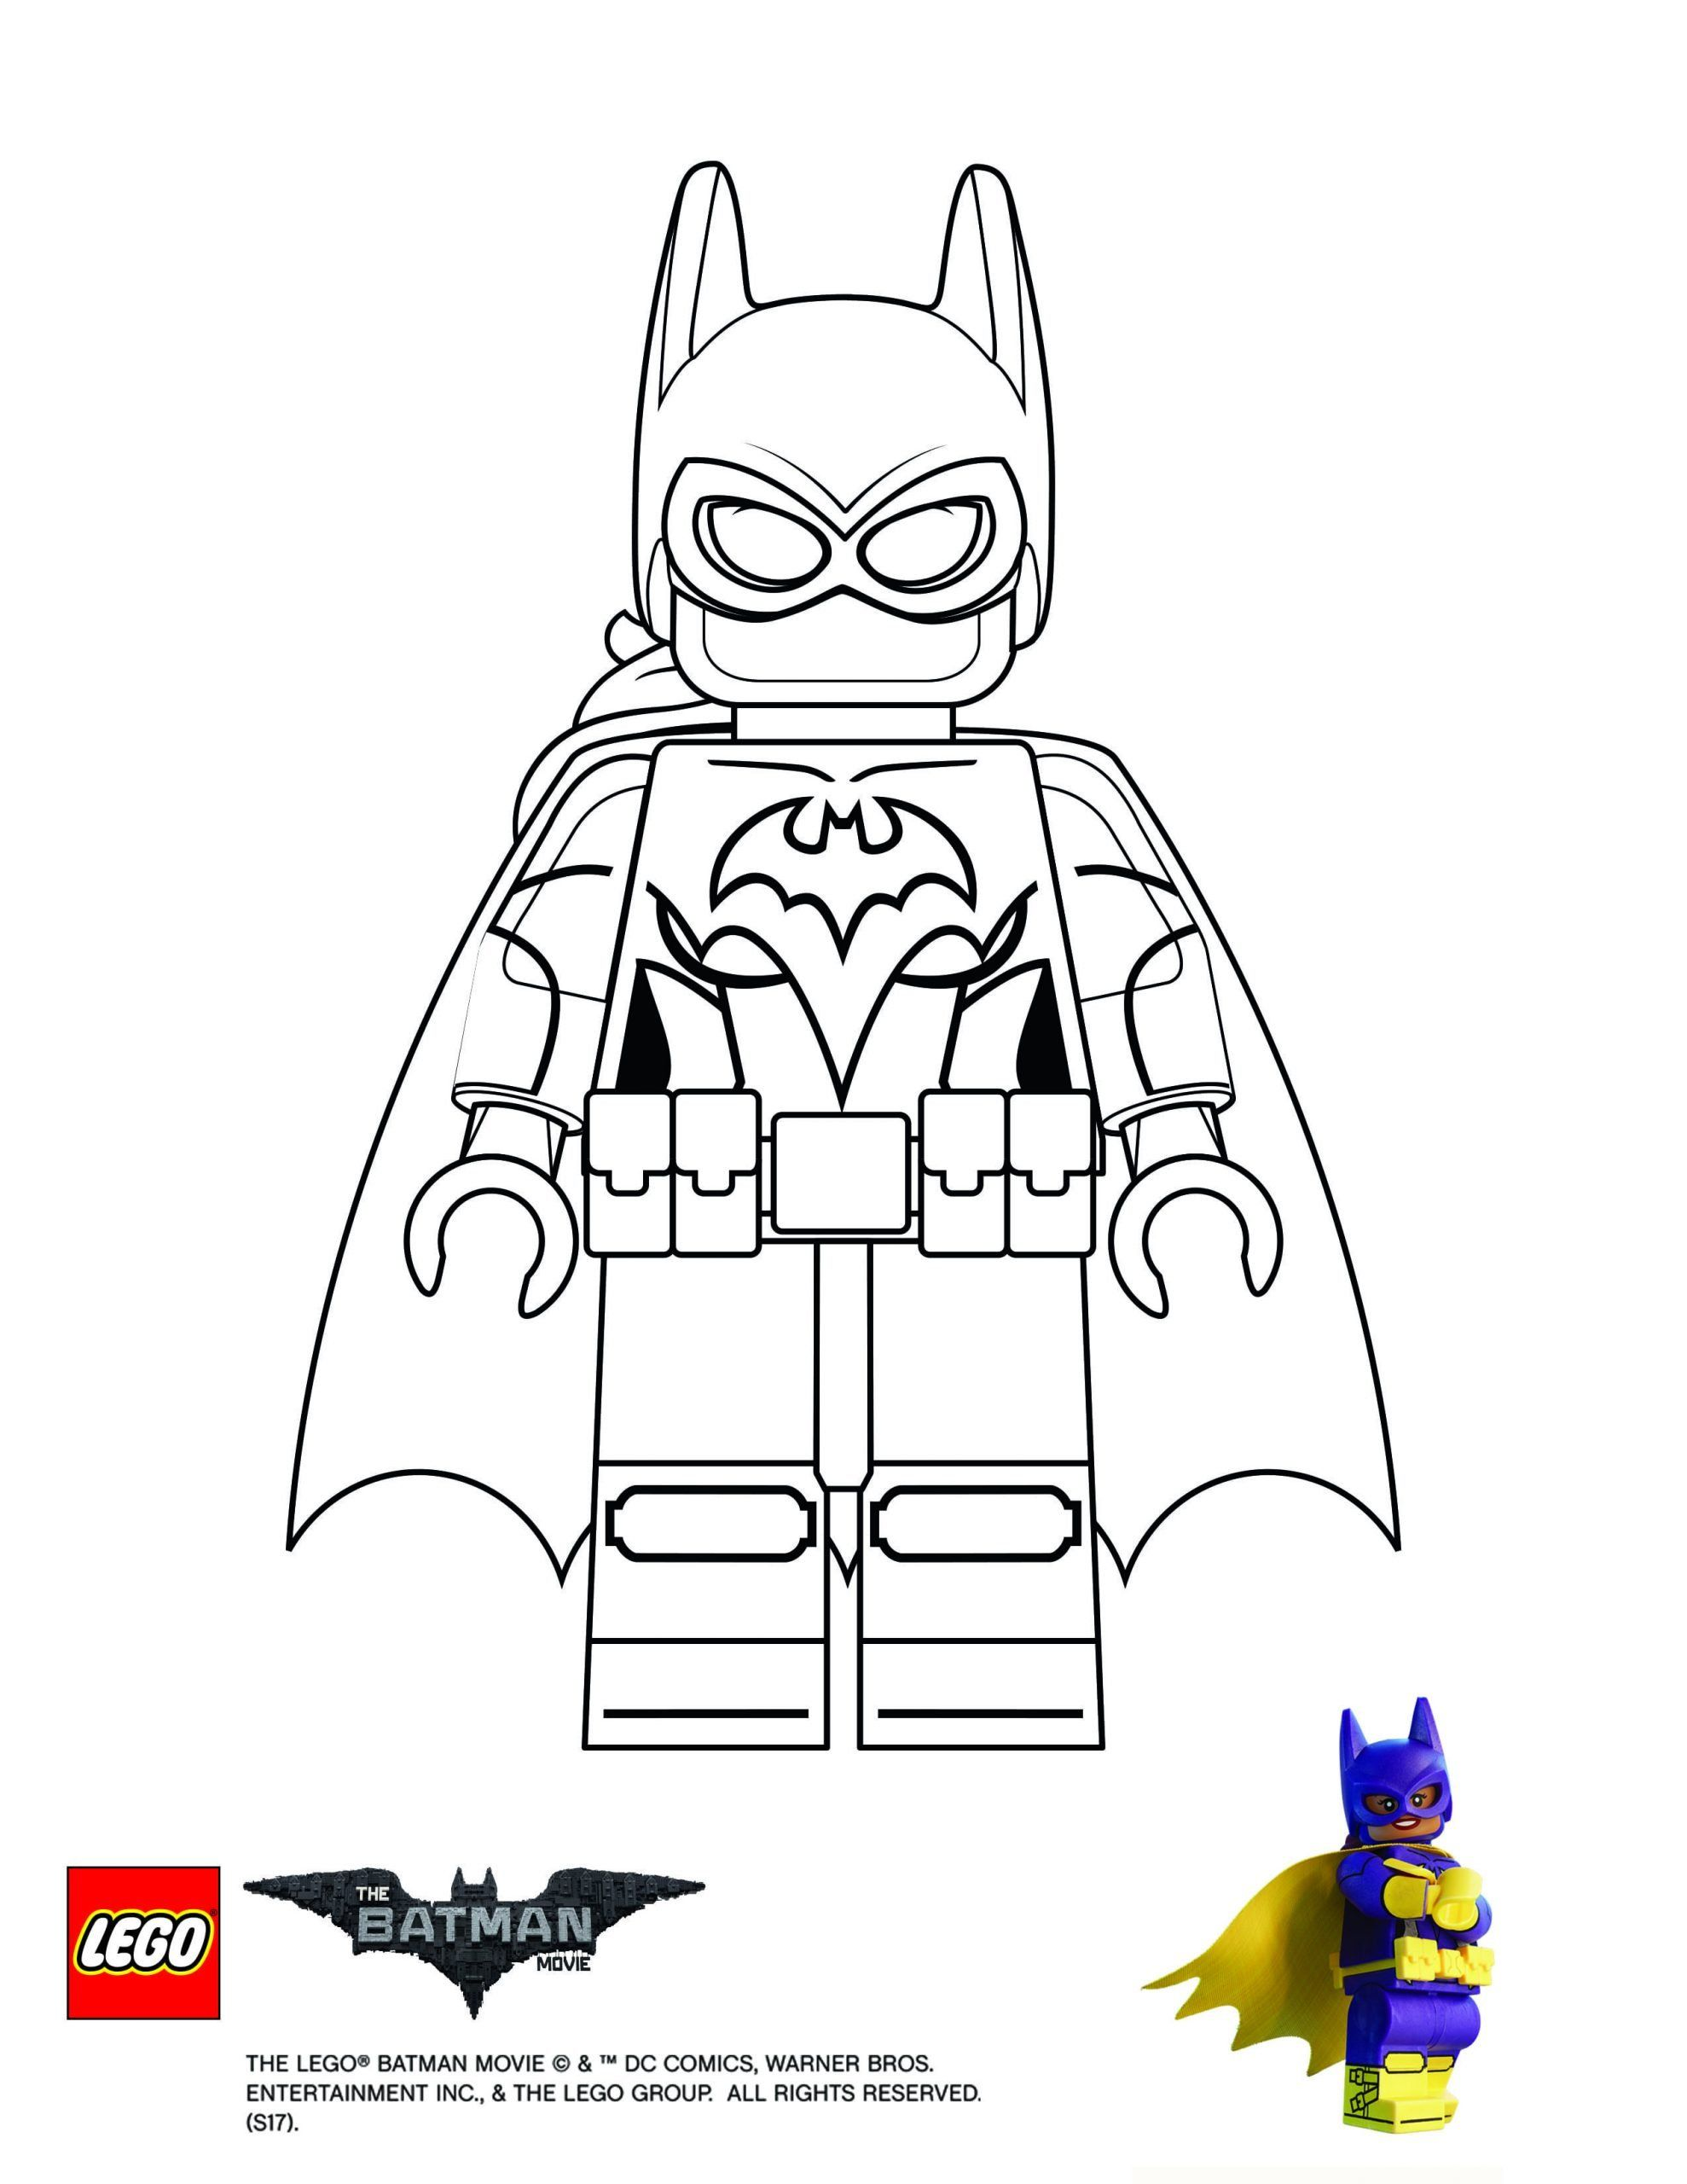 Lego Superhero Coloring Pages Finish Drawing Batgirl In 2020 Lego Coloring Pages Lego Coloring Lego Batman Birthday